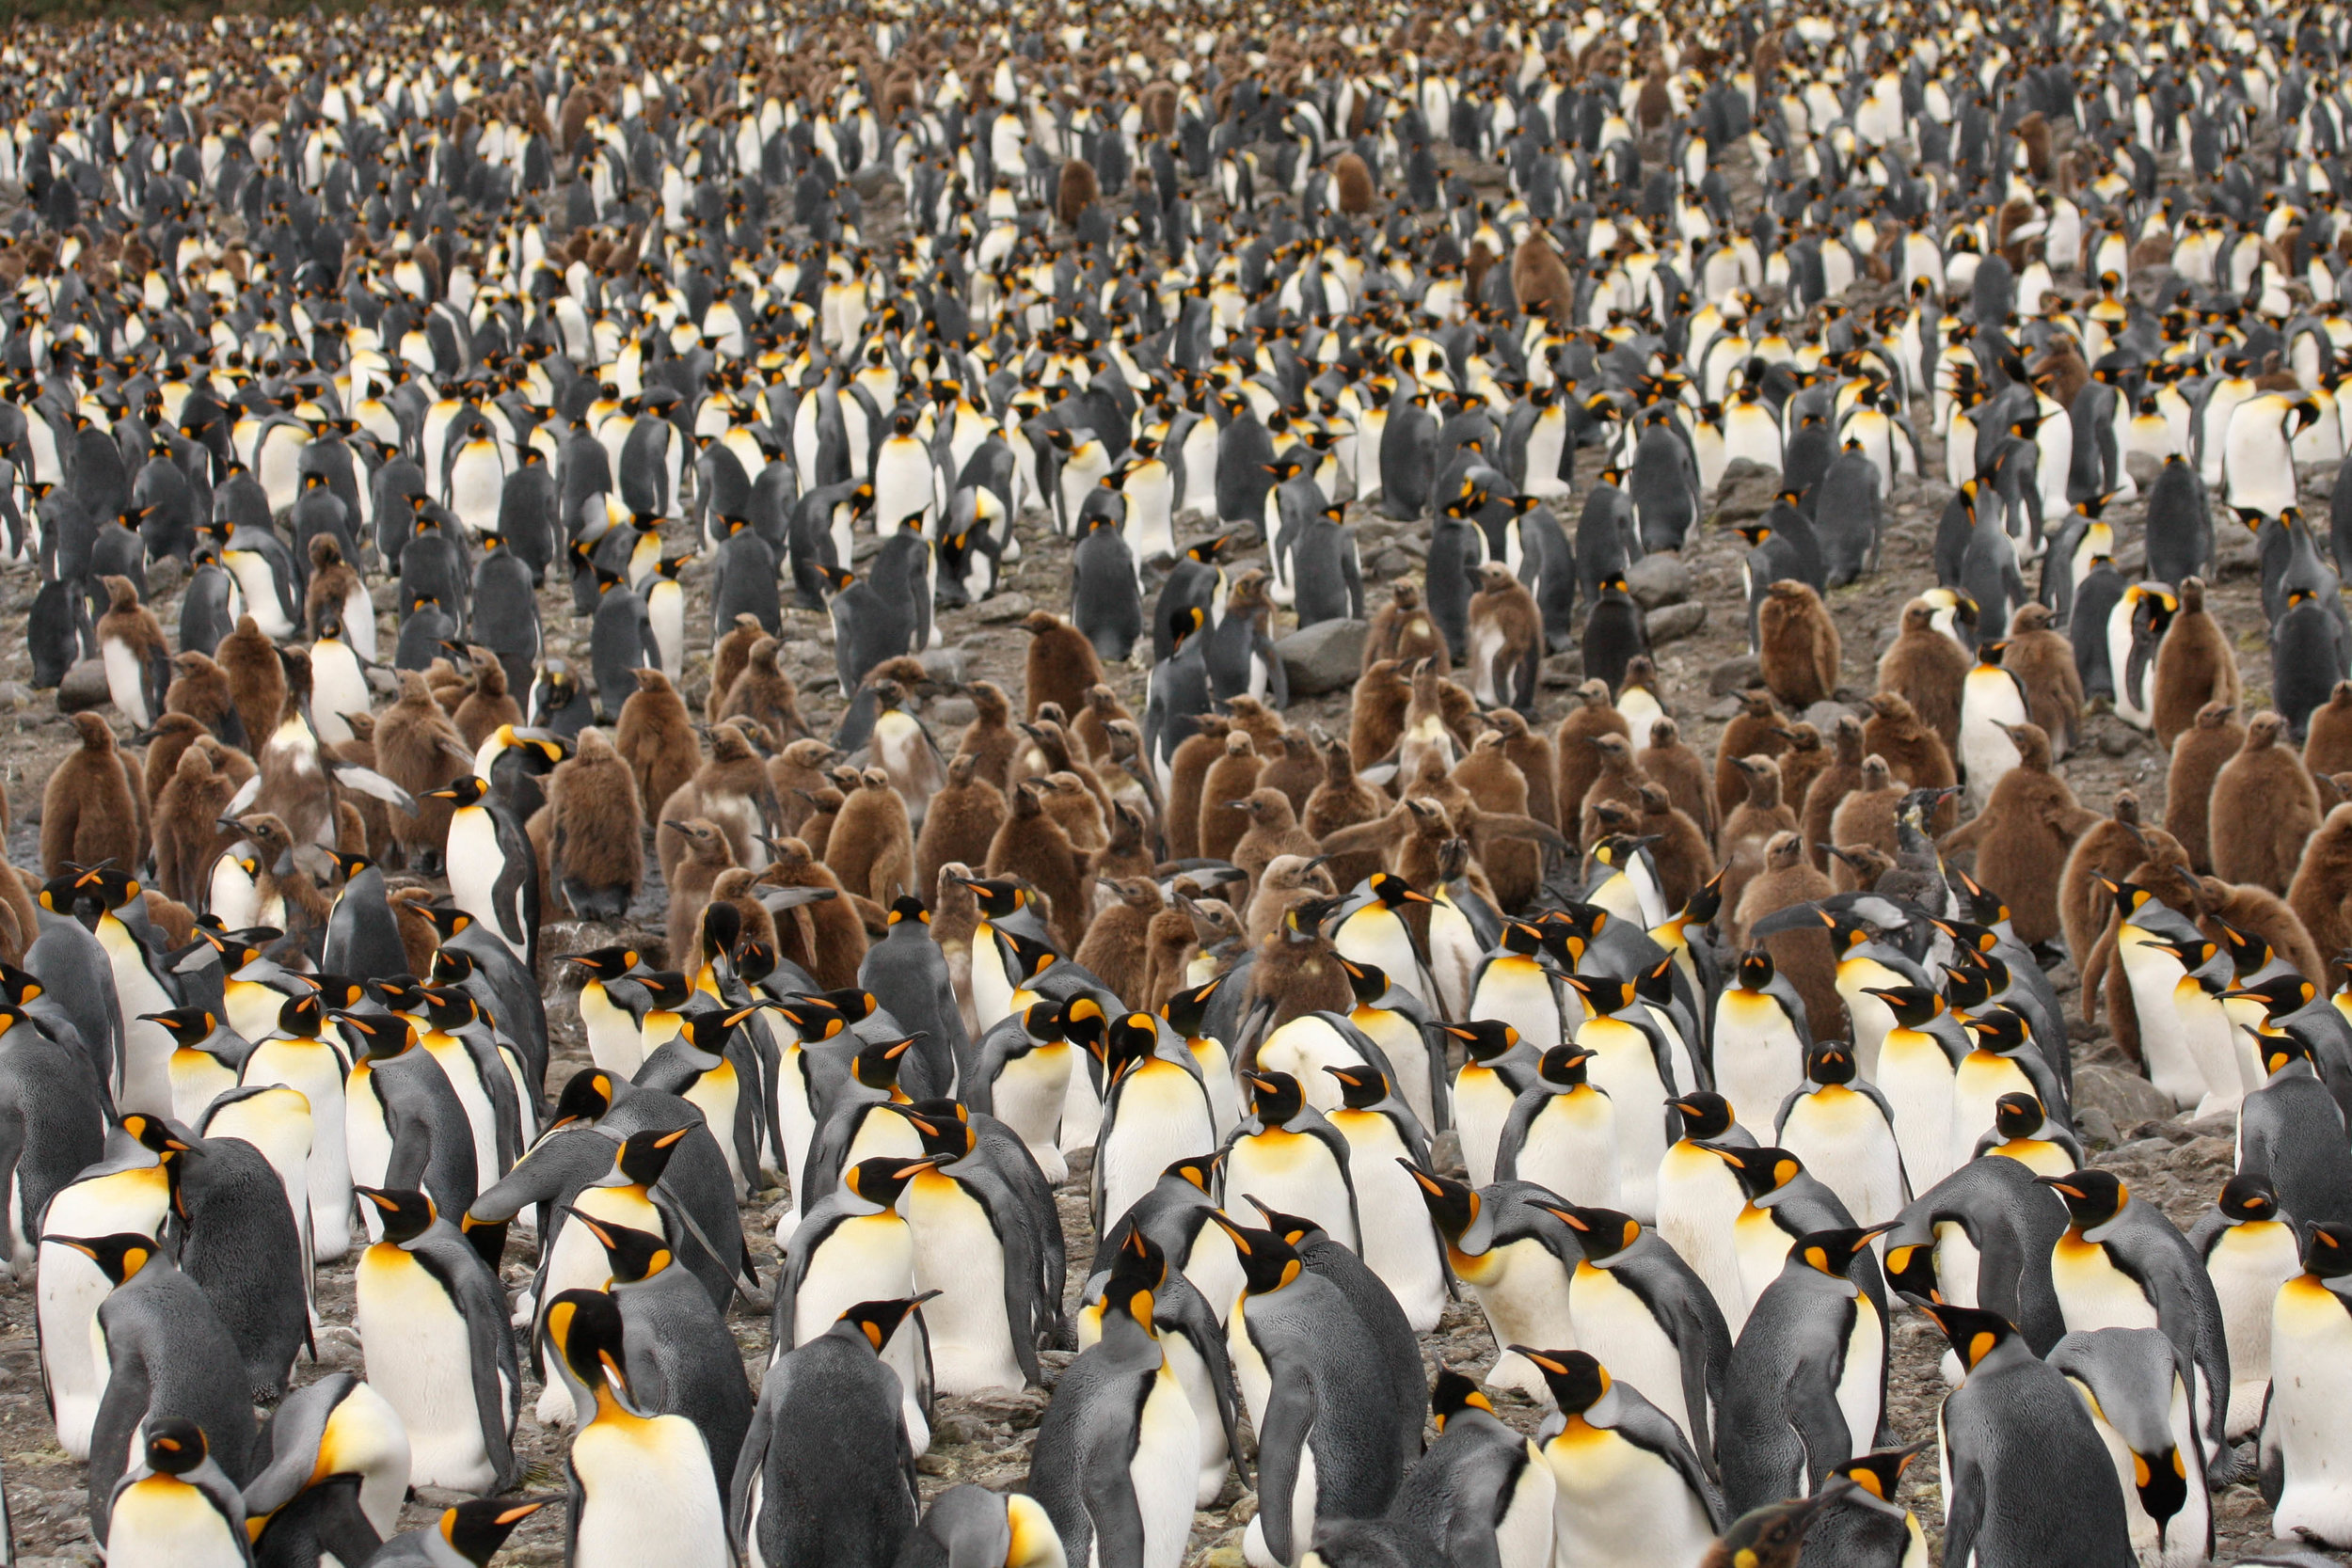 several King Penguins with their fluffy brown chicks, South Georgia